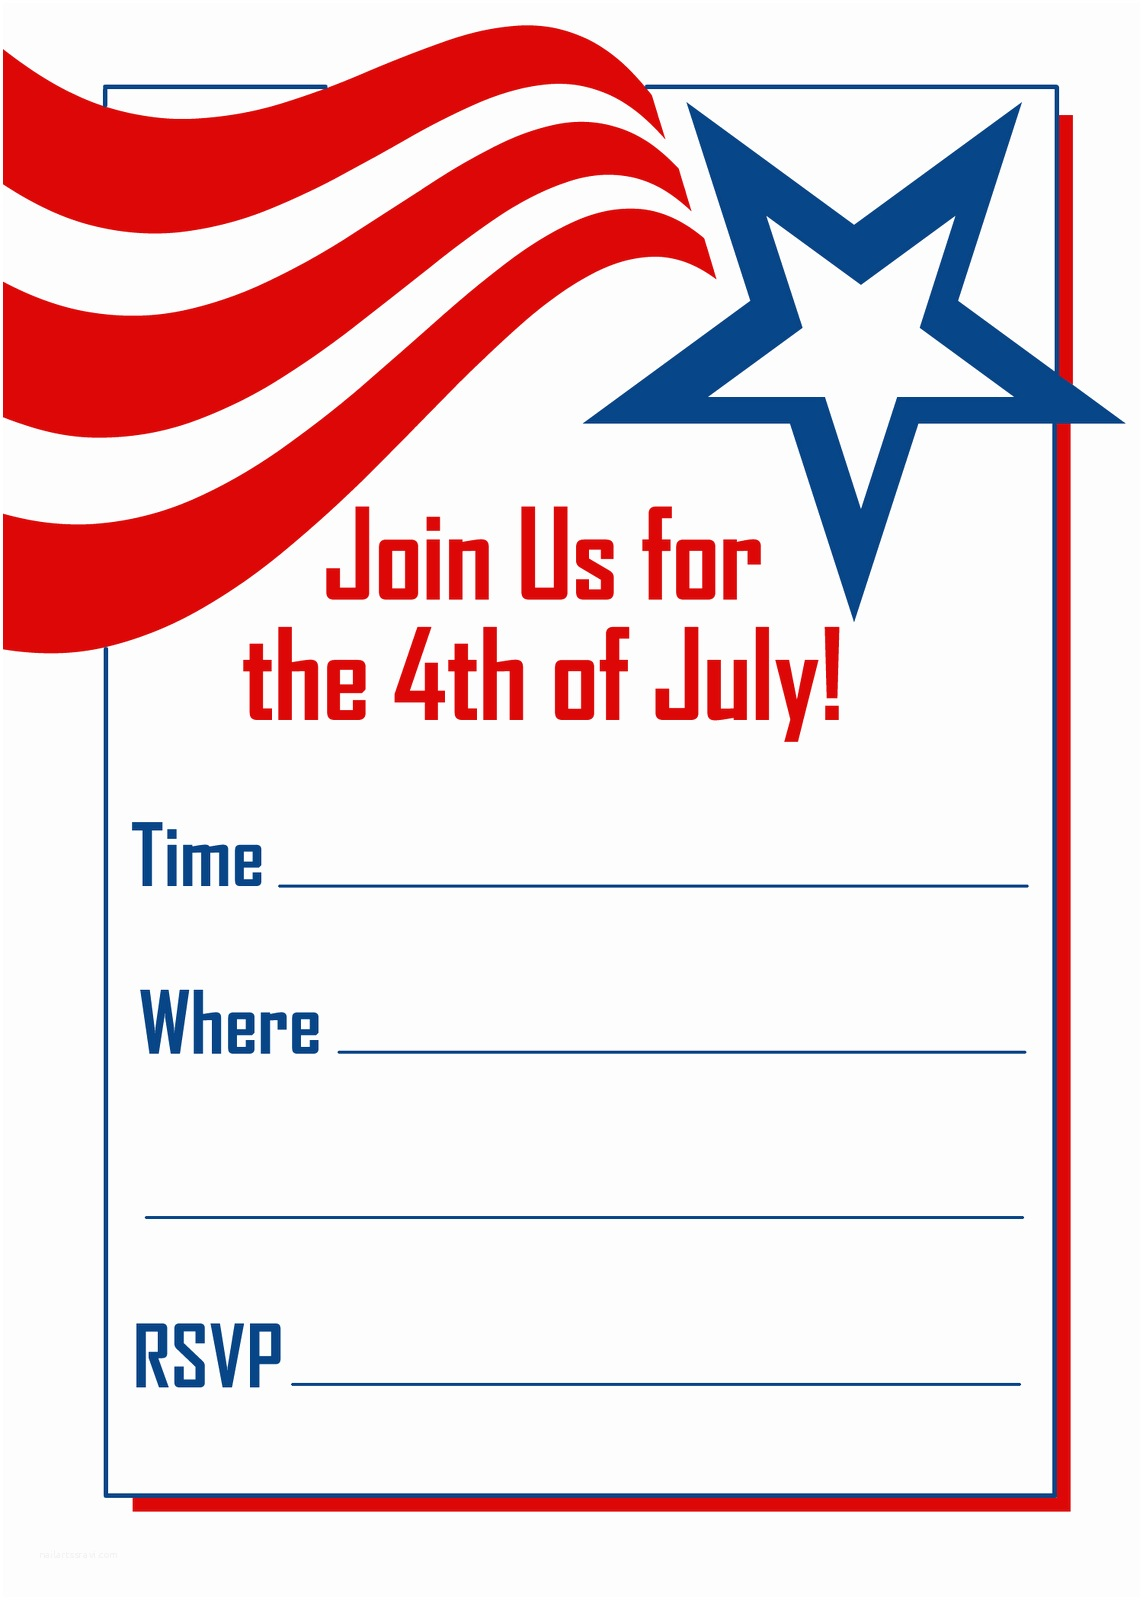 4th Of July Party Invitations Free Printable Party Invitations May 2010